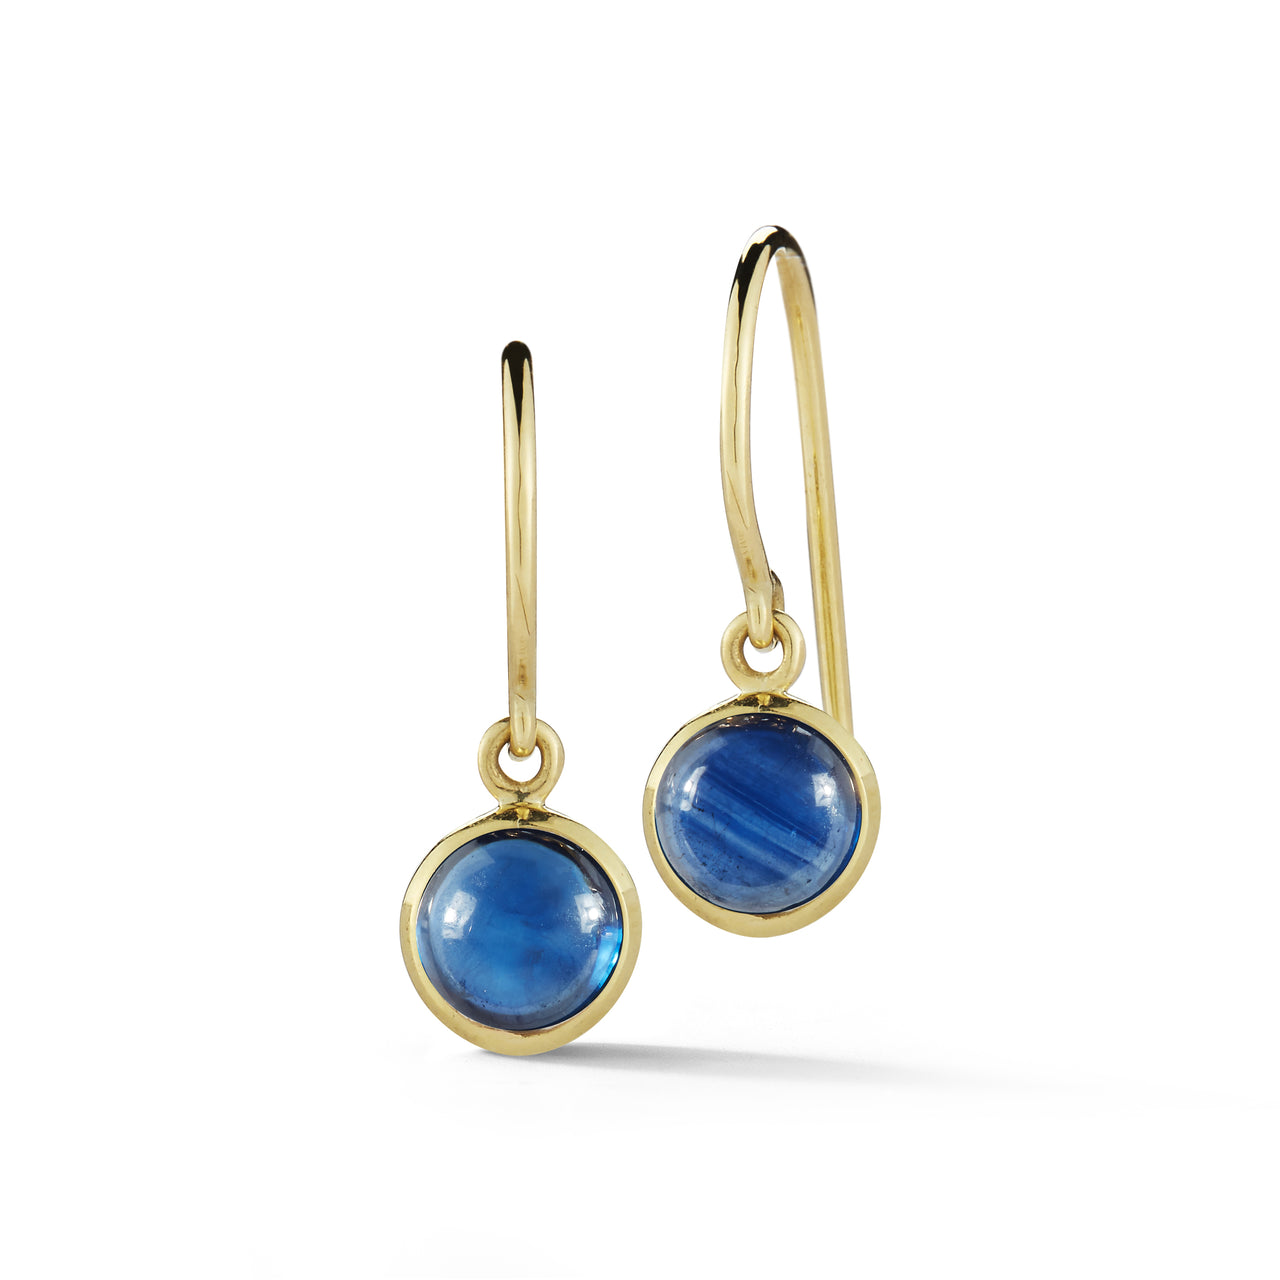 everyday lightweight sapphire cabochon dangle earrings in 18k yellow gold by finn by candice pool neistat